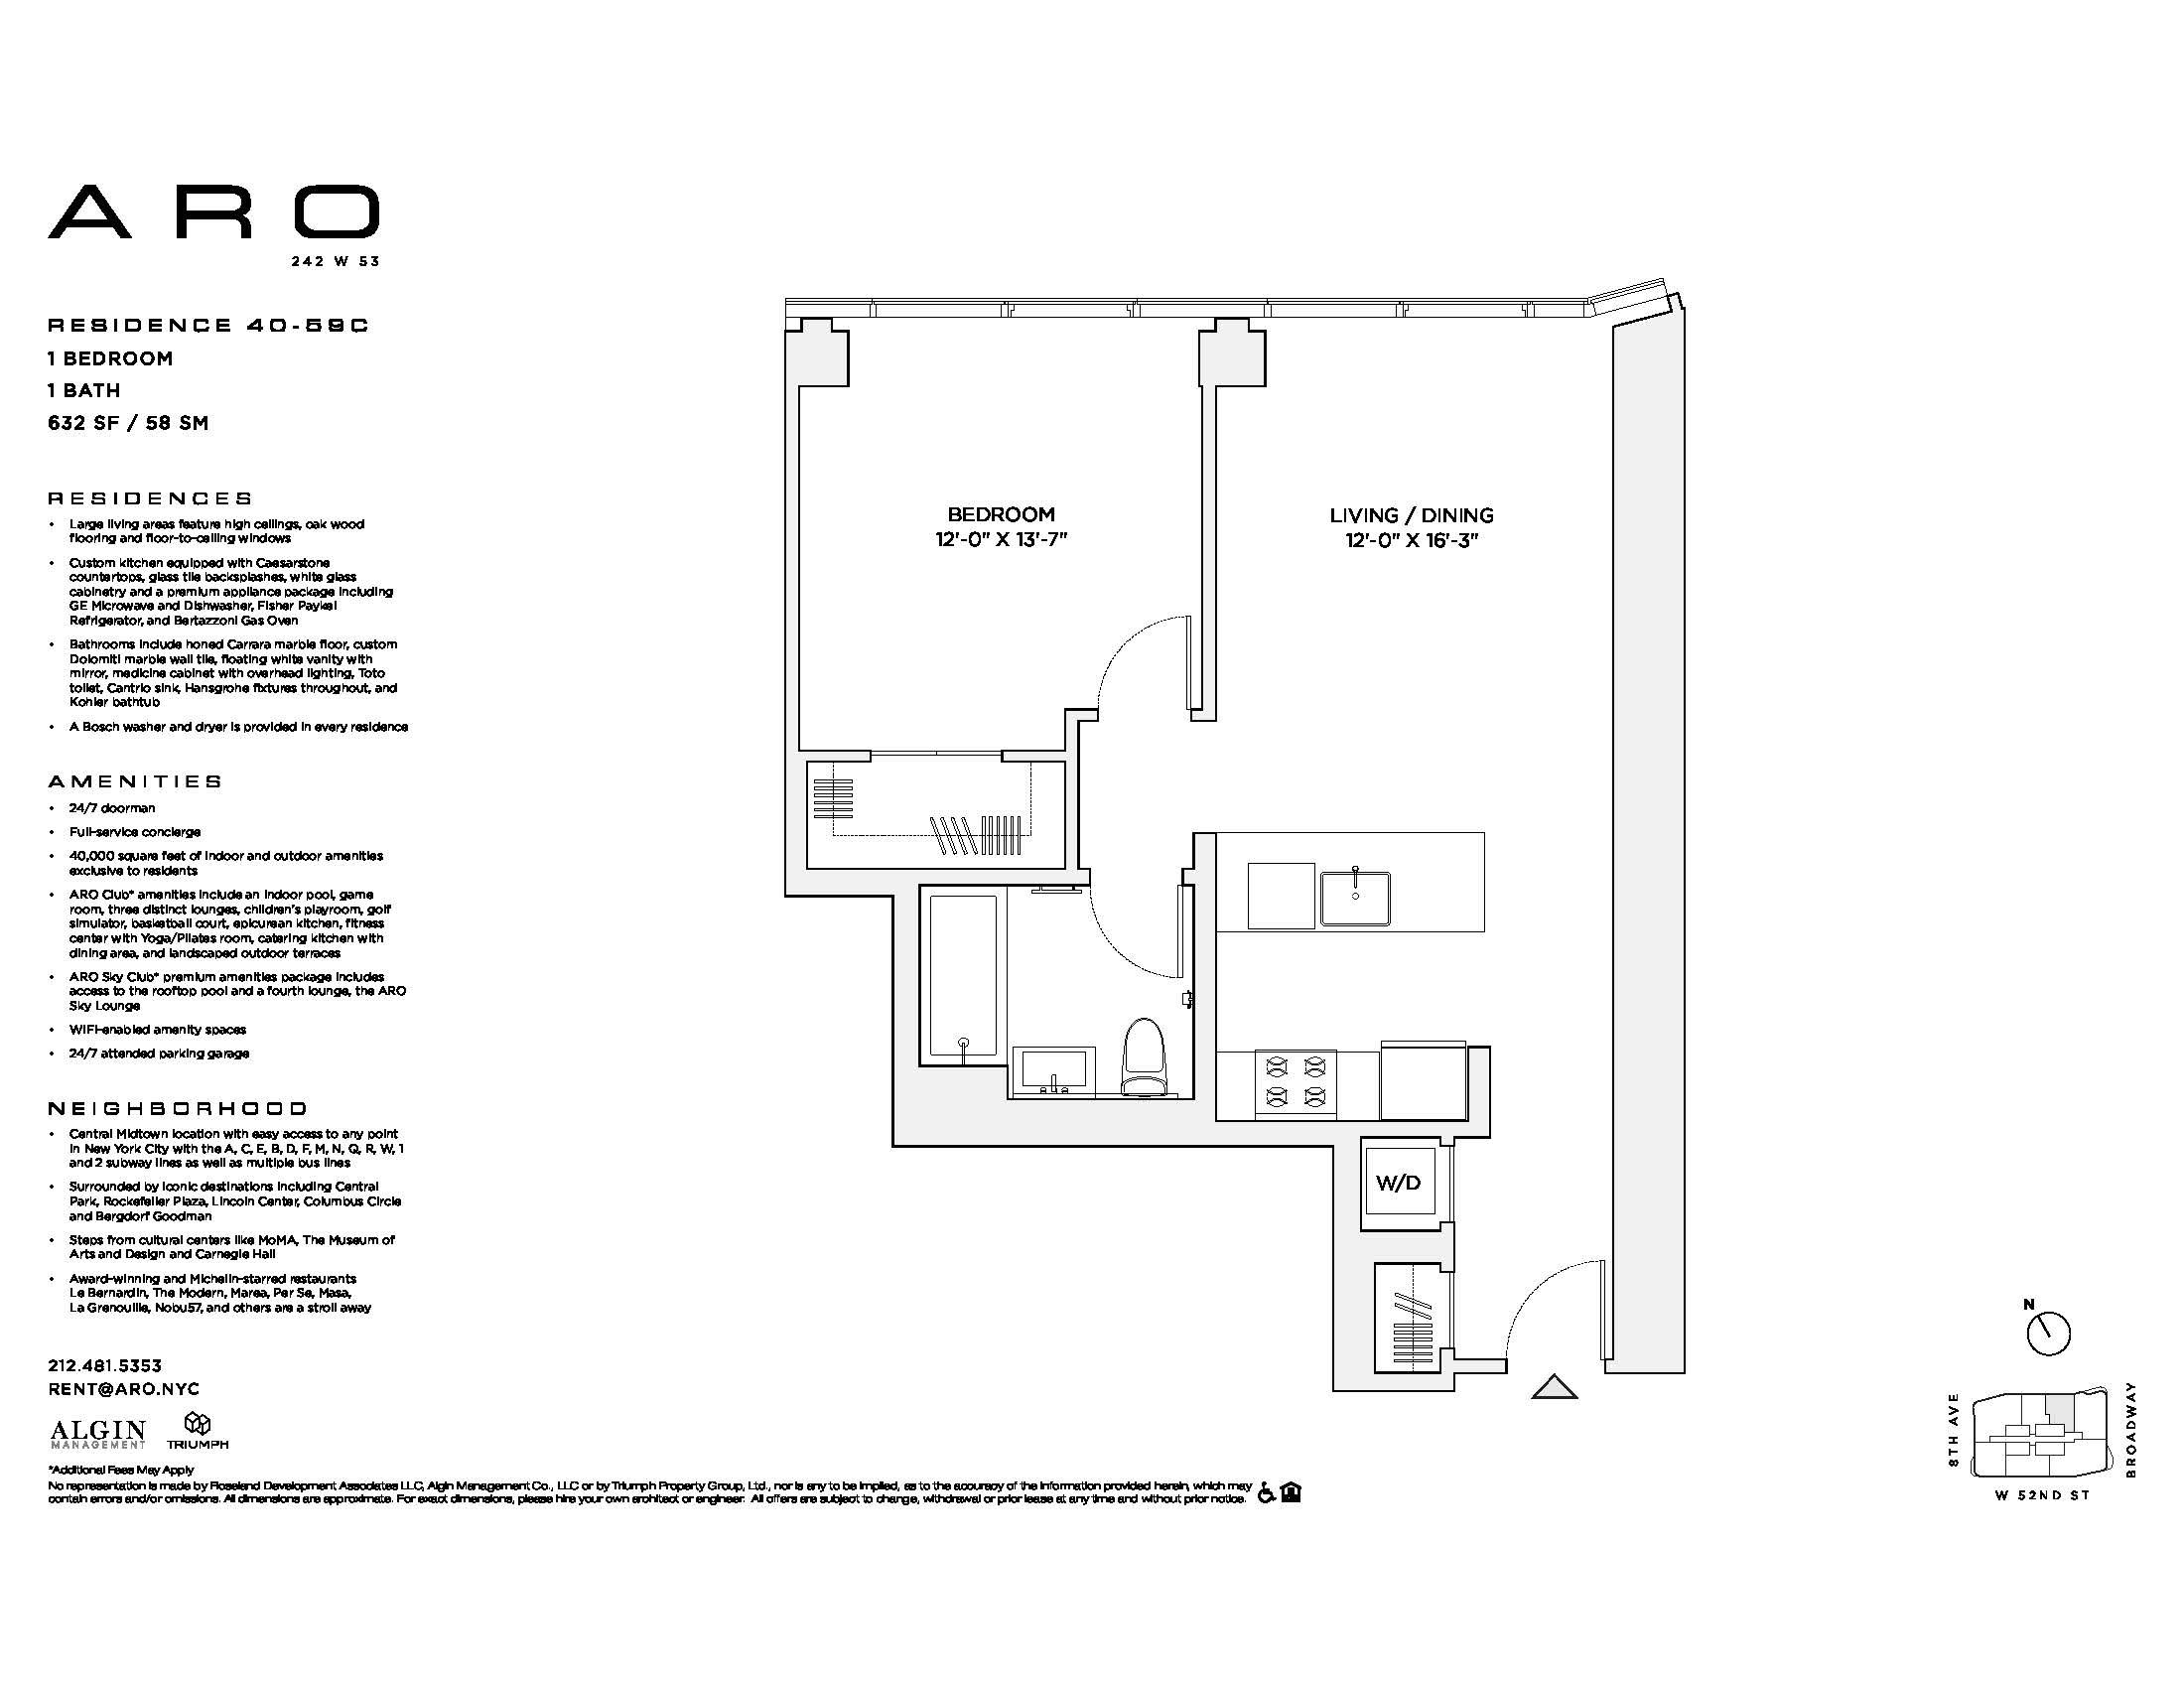 Aro Midtown West Luxury 1 To 3 Bedroom Apartment Rentals Available